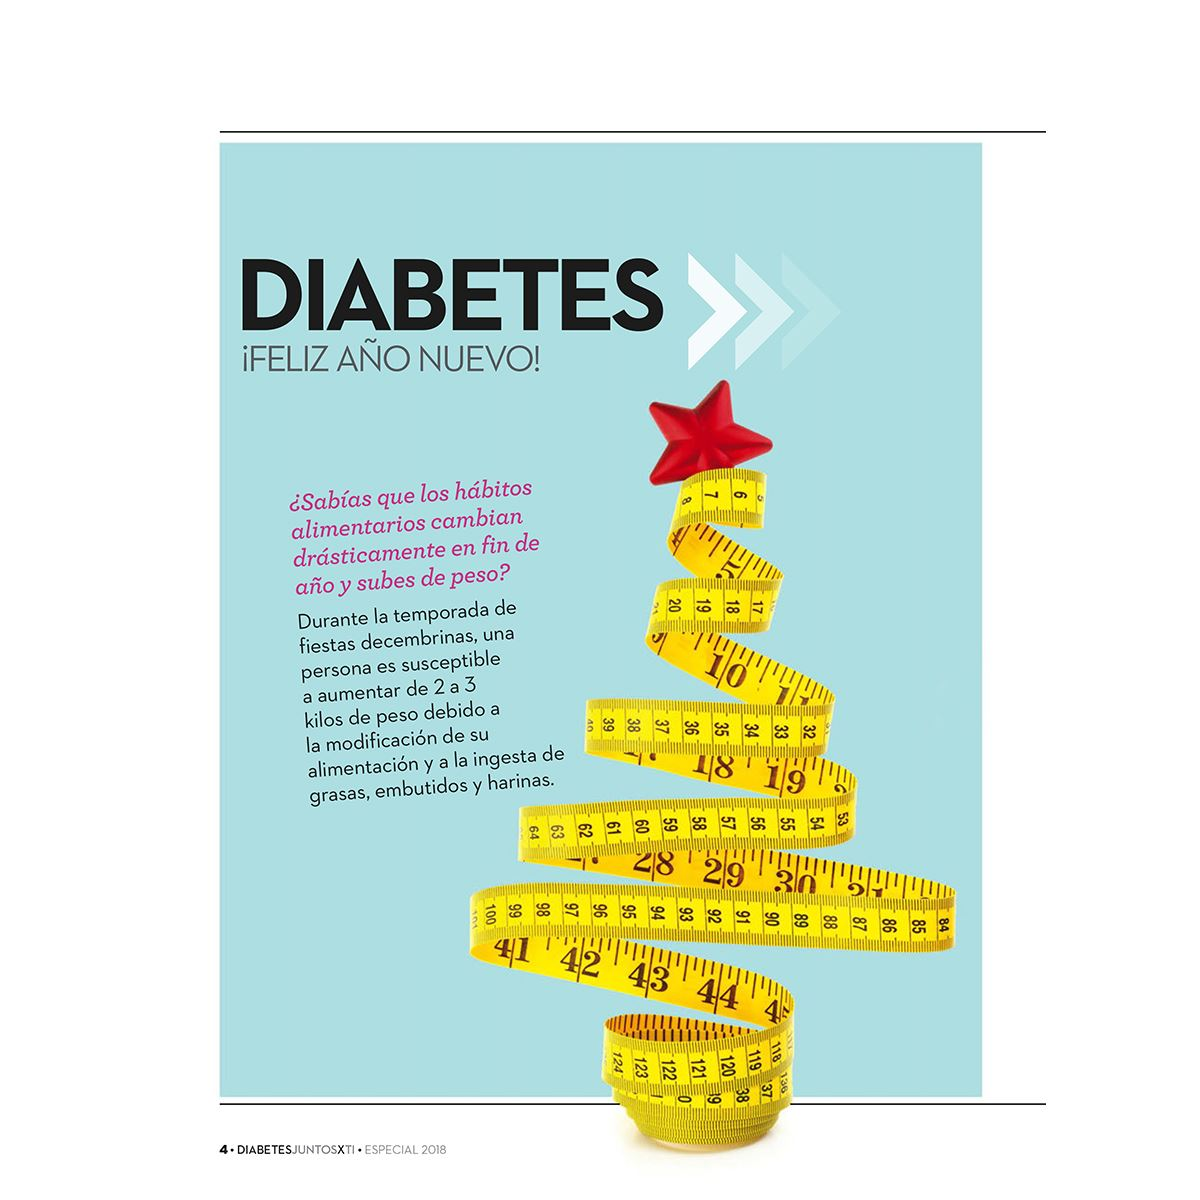 Diabetes bienestar & salud Libro - Sanborns